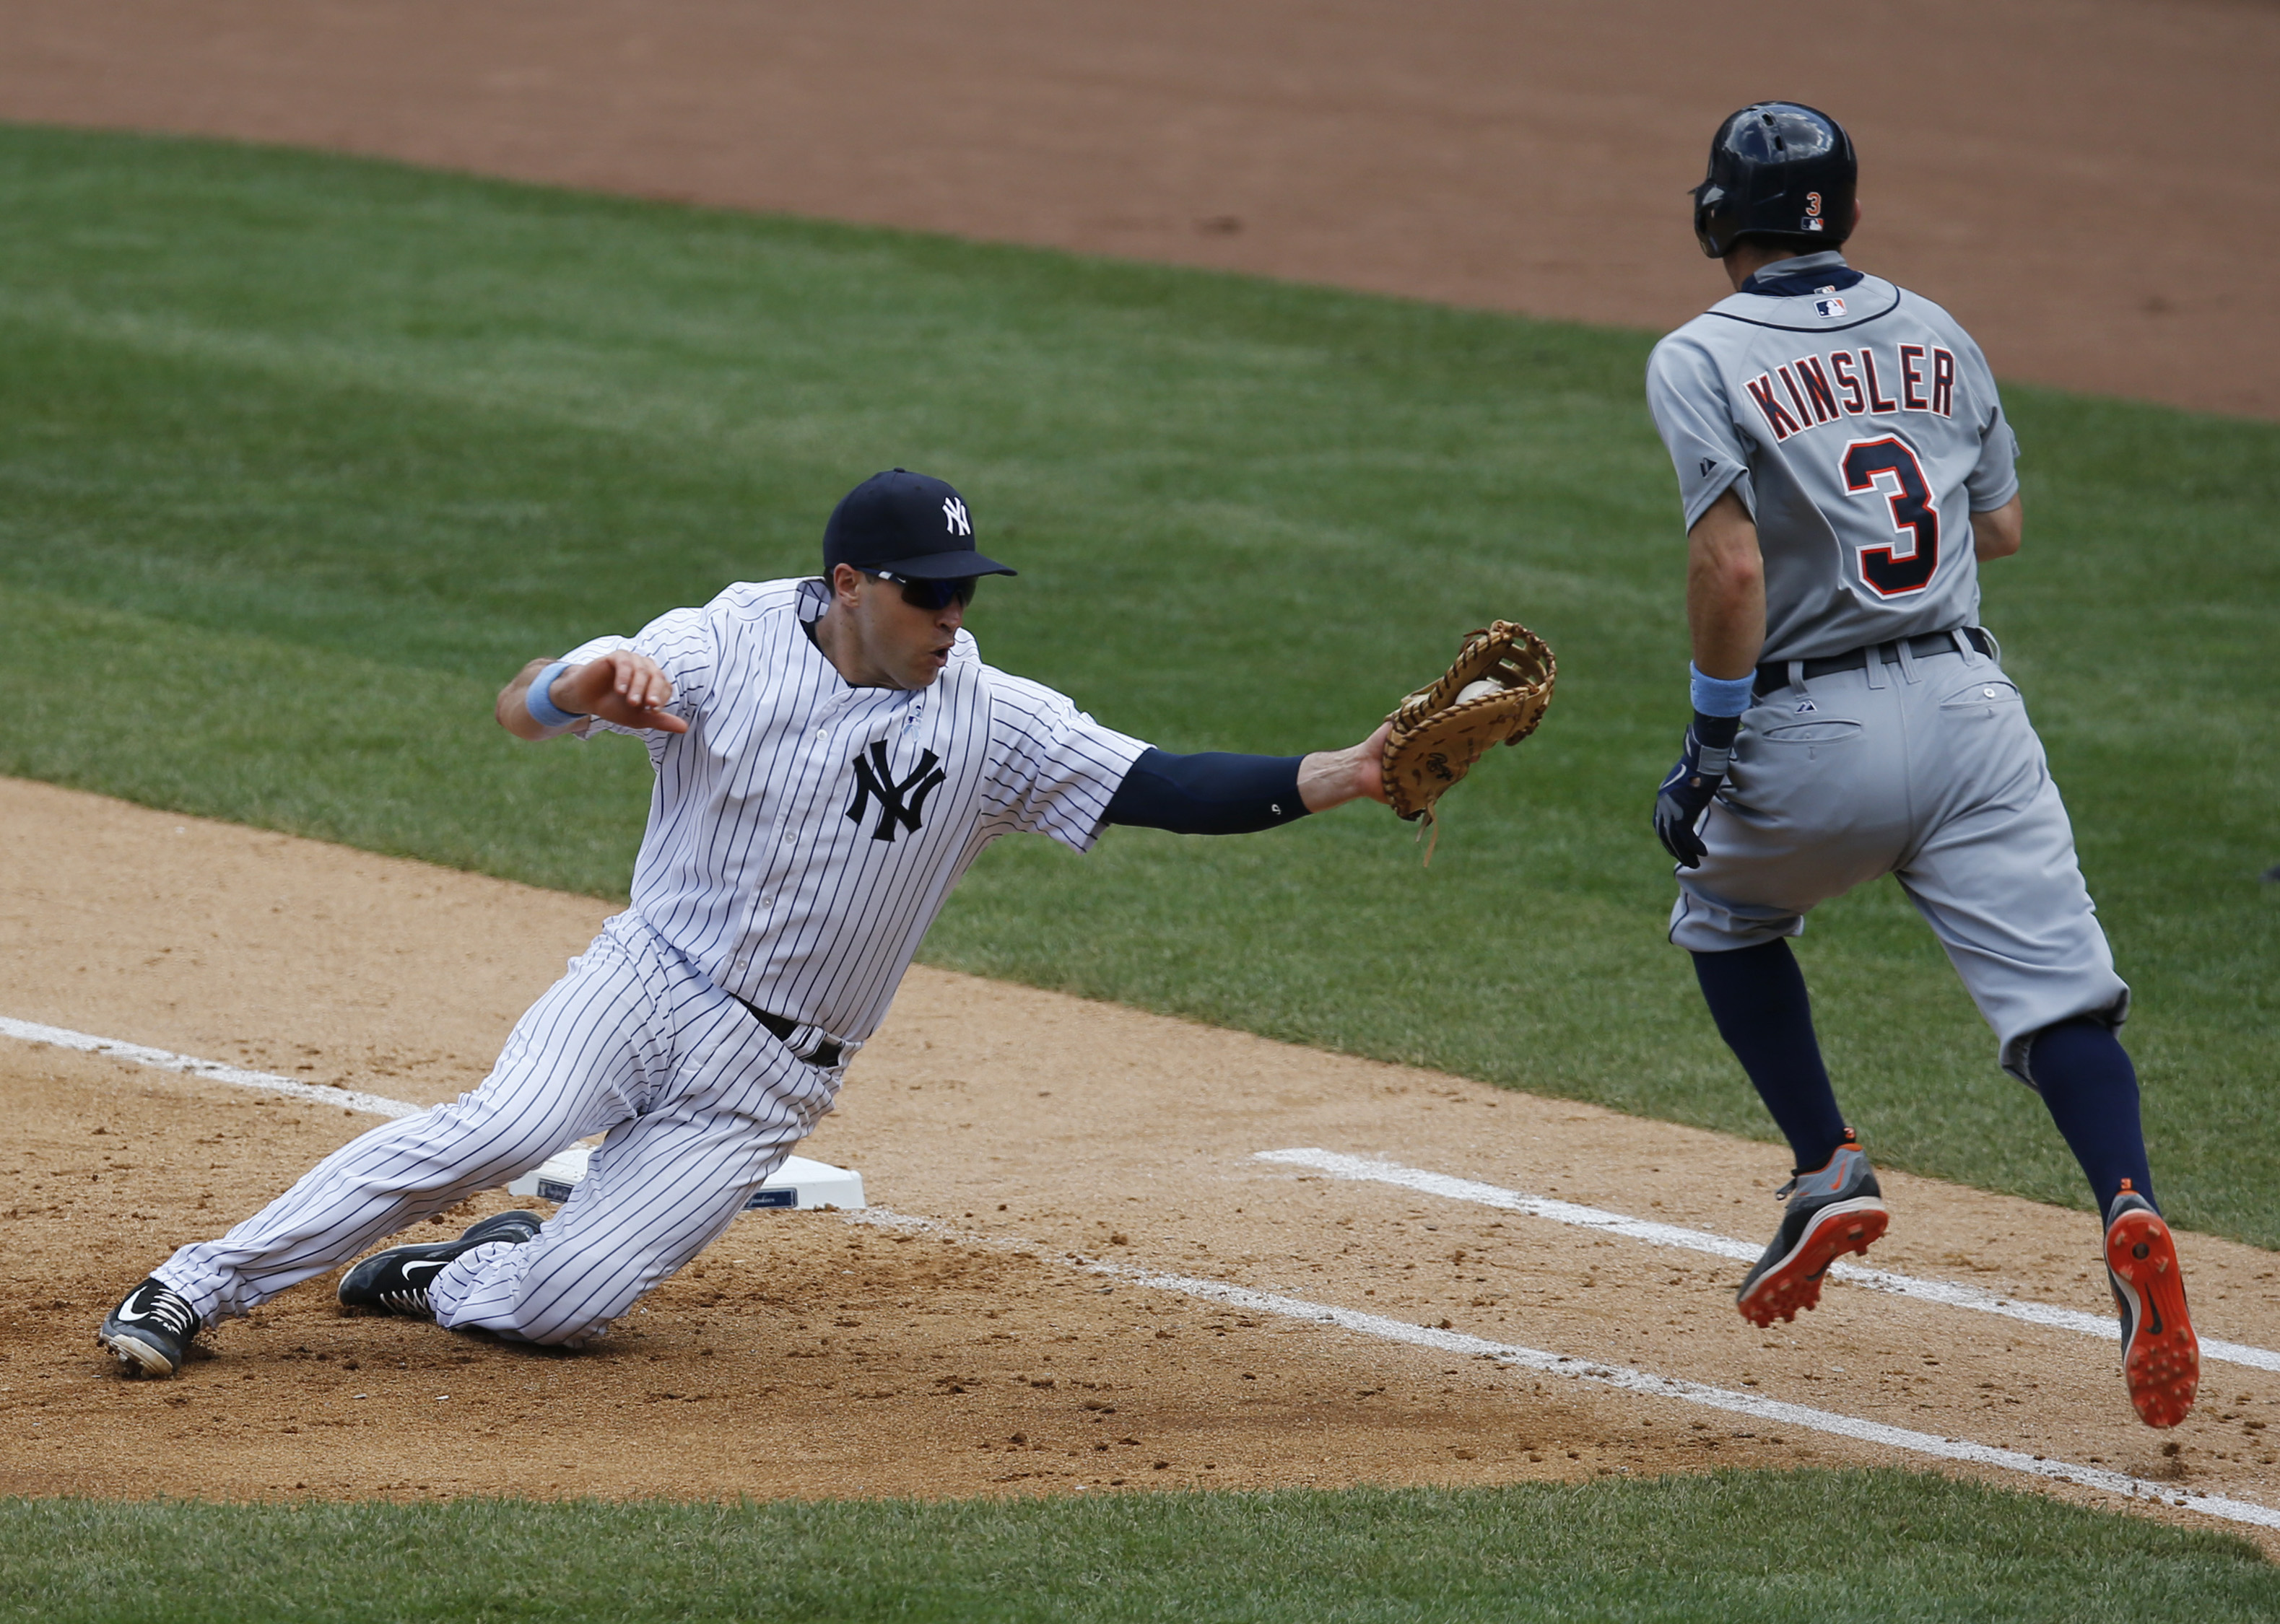 New York Yankees first baseman Mark Teixeira (25) prepares to tag Detroit Tigers Ian Kinsler (3) on a sixth-inning groundout in a baseball game at Yankee Stadium in New York, Sunday, June 21, 2015.  (AP Photo/Kathy Willens)